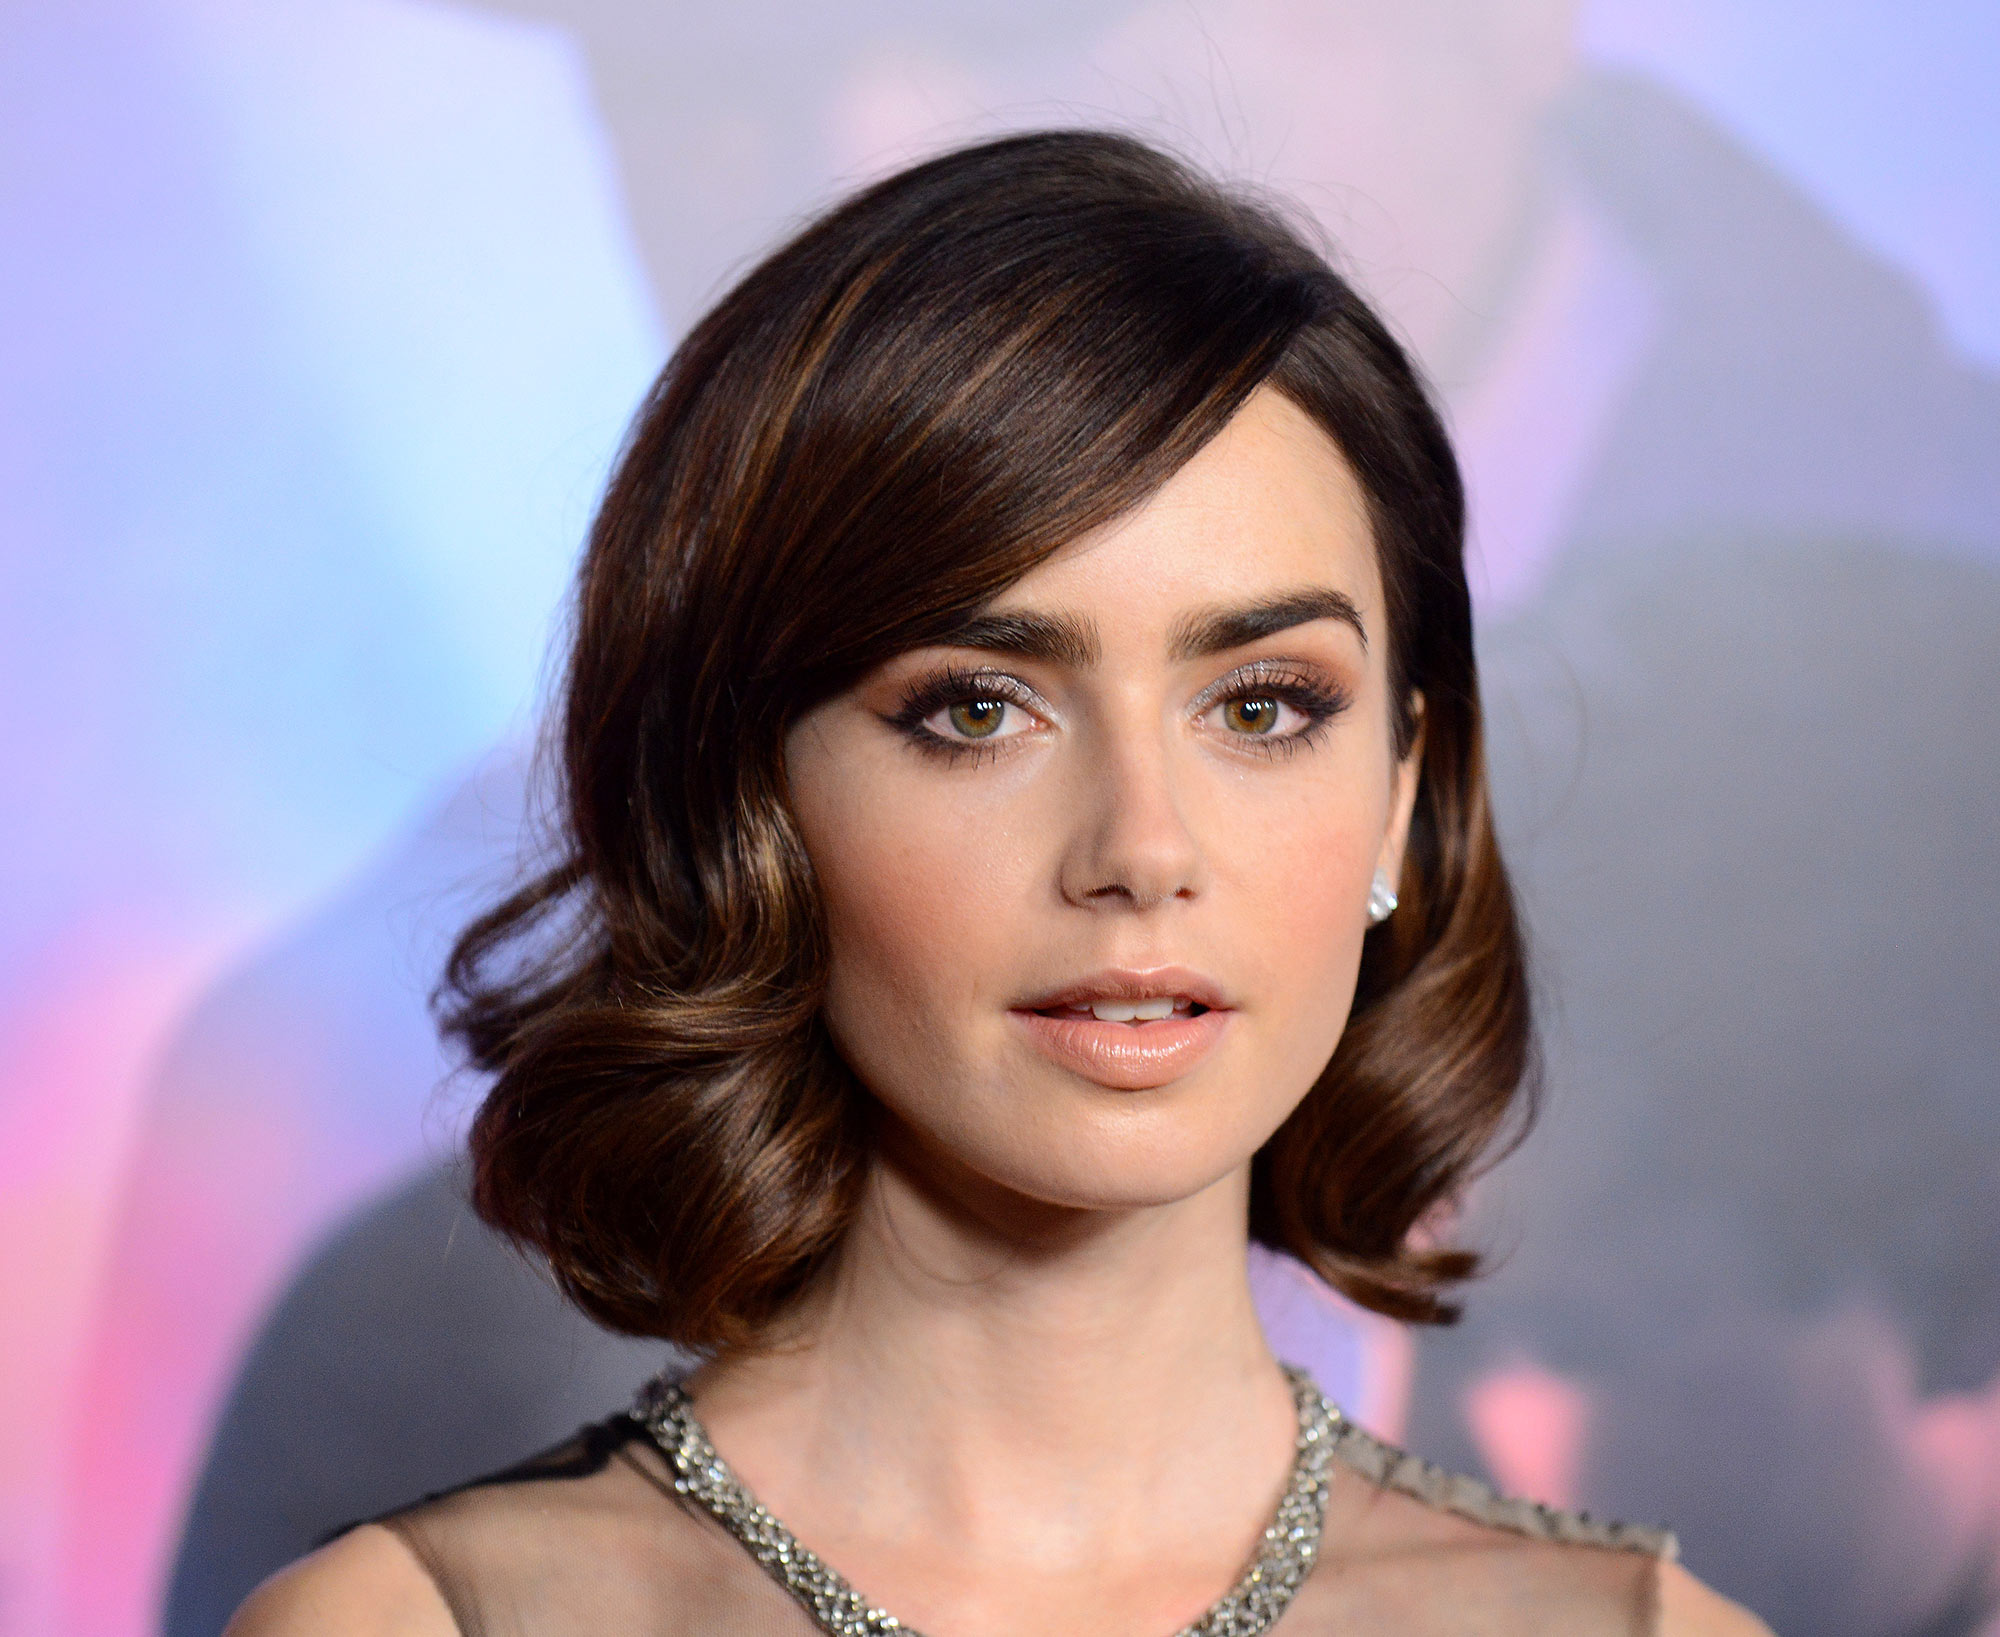 From lily collins hairstyles 2017 best haircuts and hair colors - From Lily Collins Hairstyles 2017 Best Haircuts And Hair Colors 59